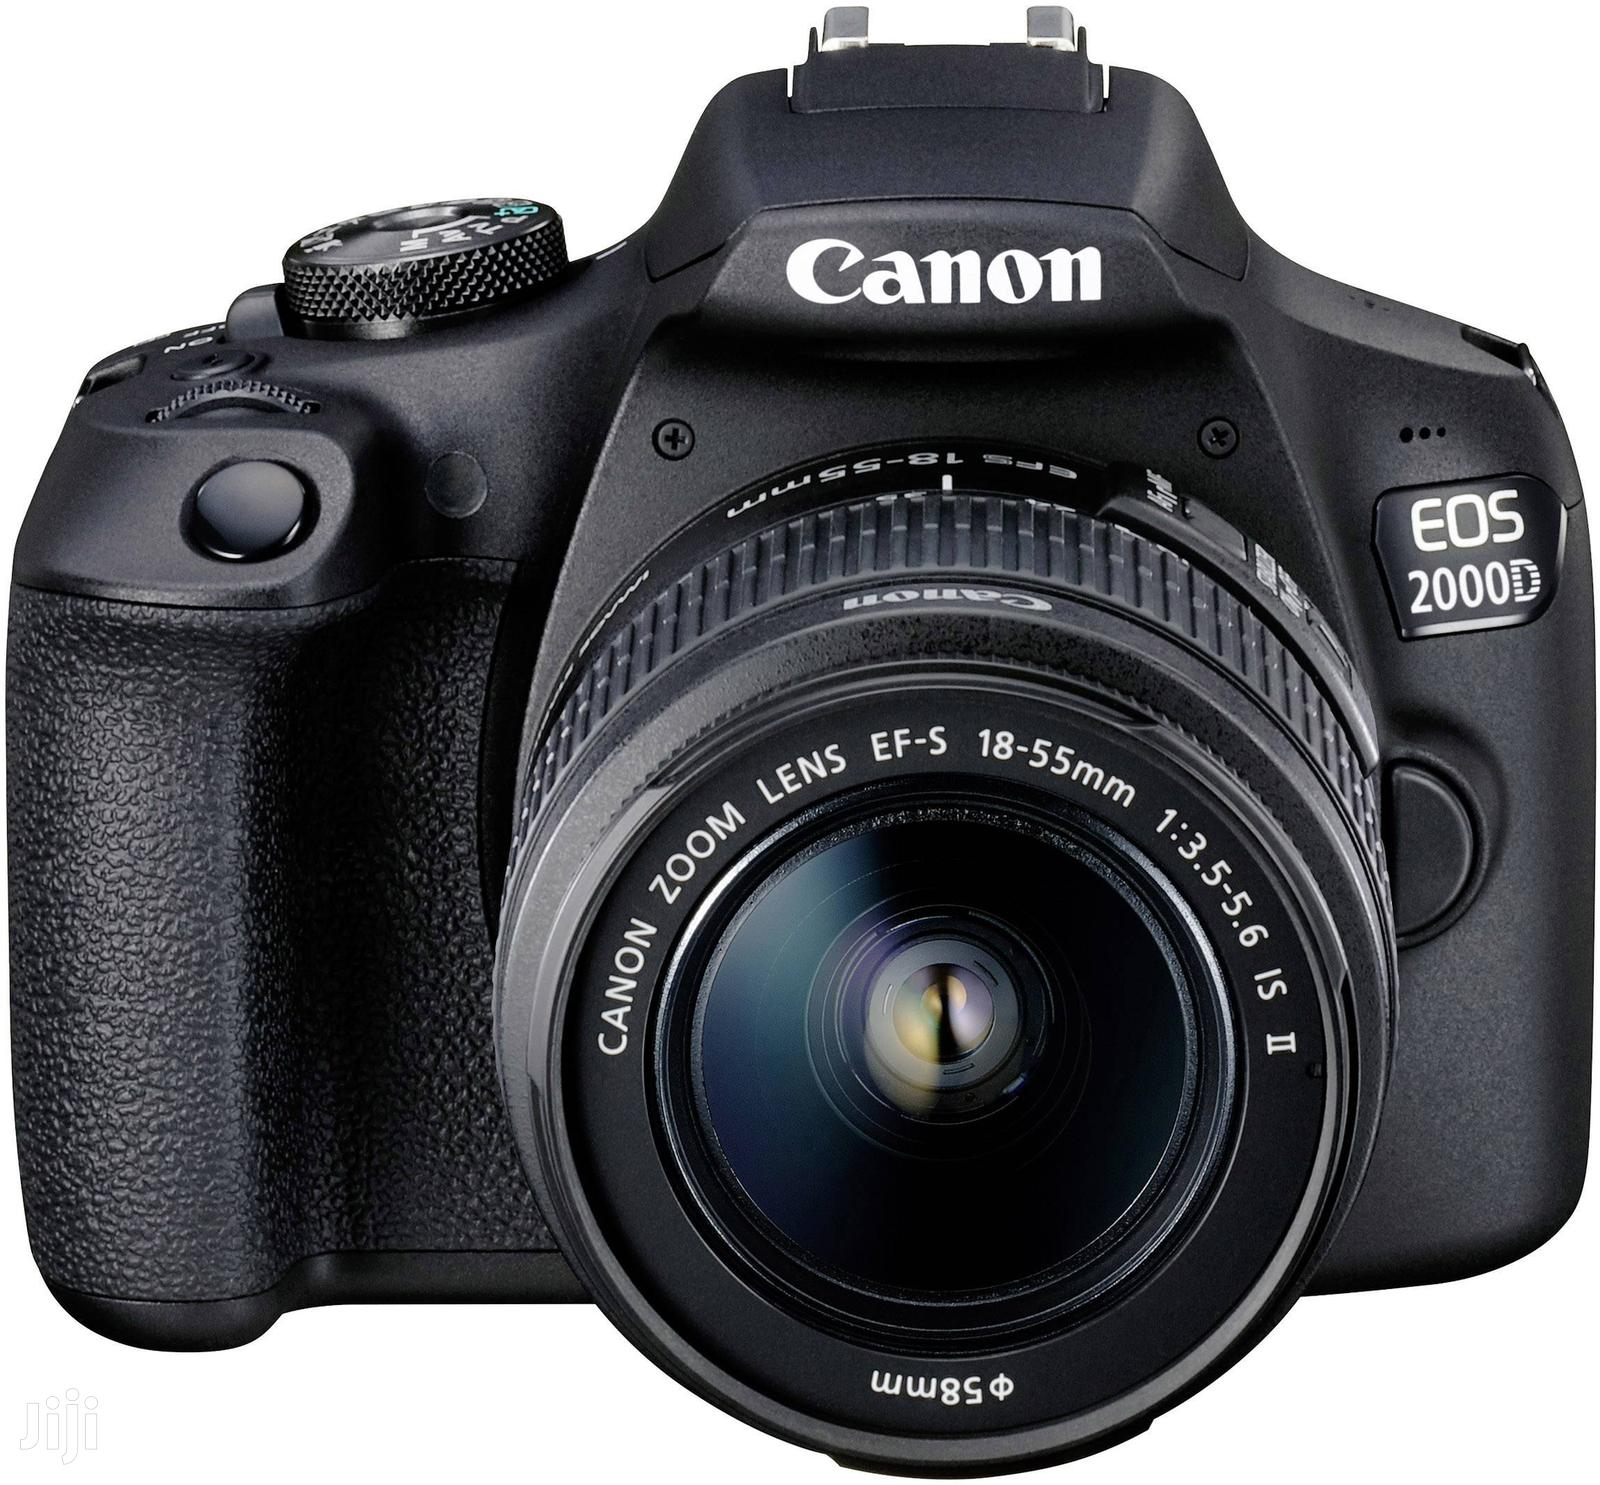 Canon EOS 2000d/Rebel T7 24.1MP Wi-Fi With 18-55 Lens IS II